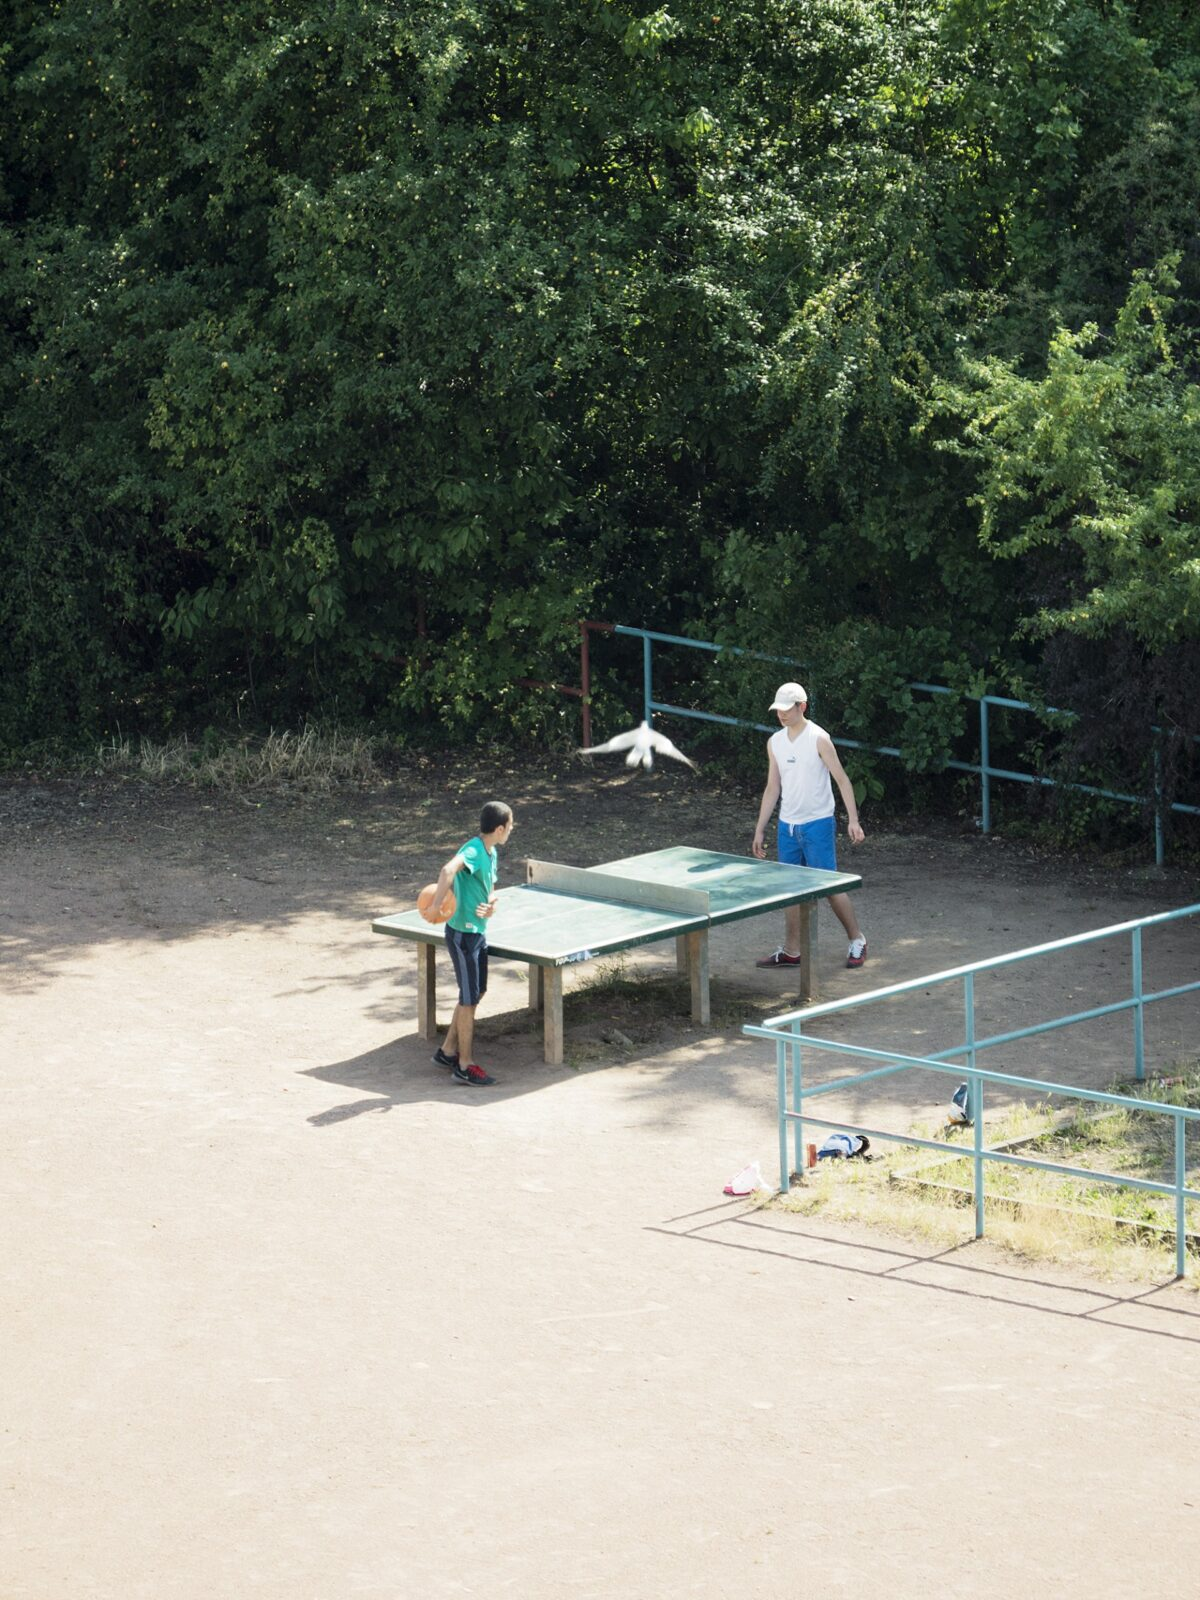 The Diverse Daily Life of a Ping Pong Table in Germany Photographed by Tomiyasu Hayahisa